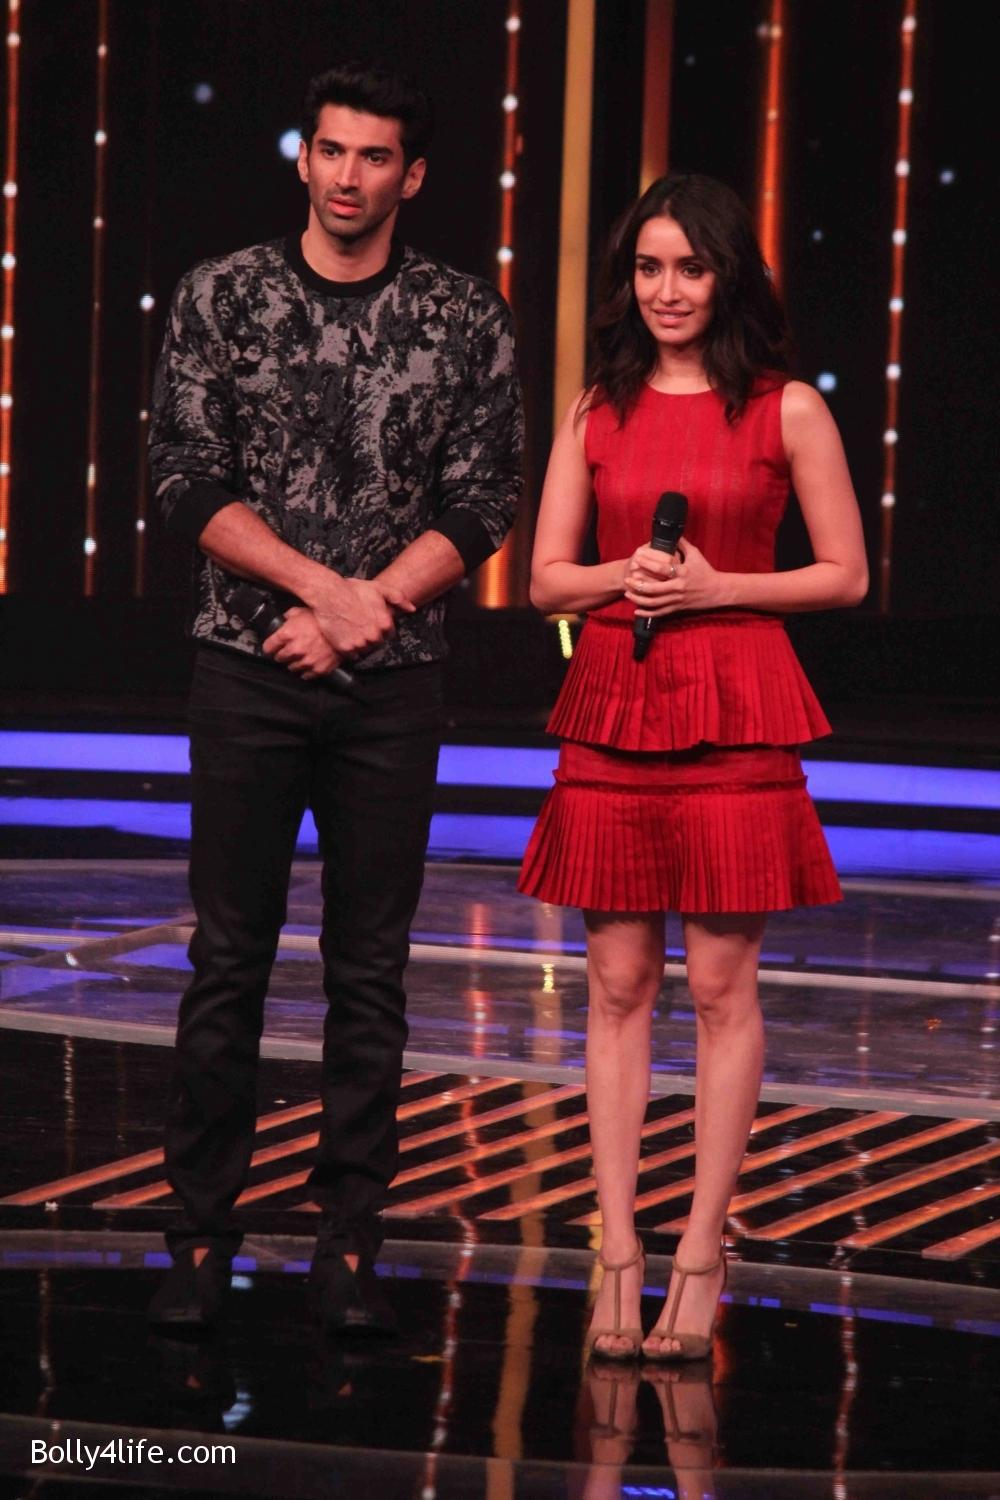 Aditya-Roy-Kapur-and-Shraddha-Kapoor-during-the-promotion-of-film-Ok-Jaanu-on-the-sets-Star-Plus-singing-reality-show-Dil-Hai-Hindustani-5.jpg